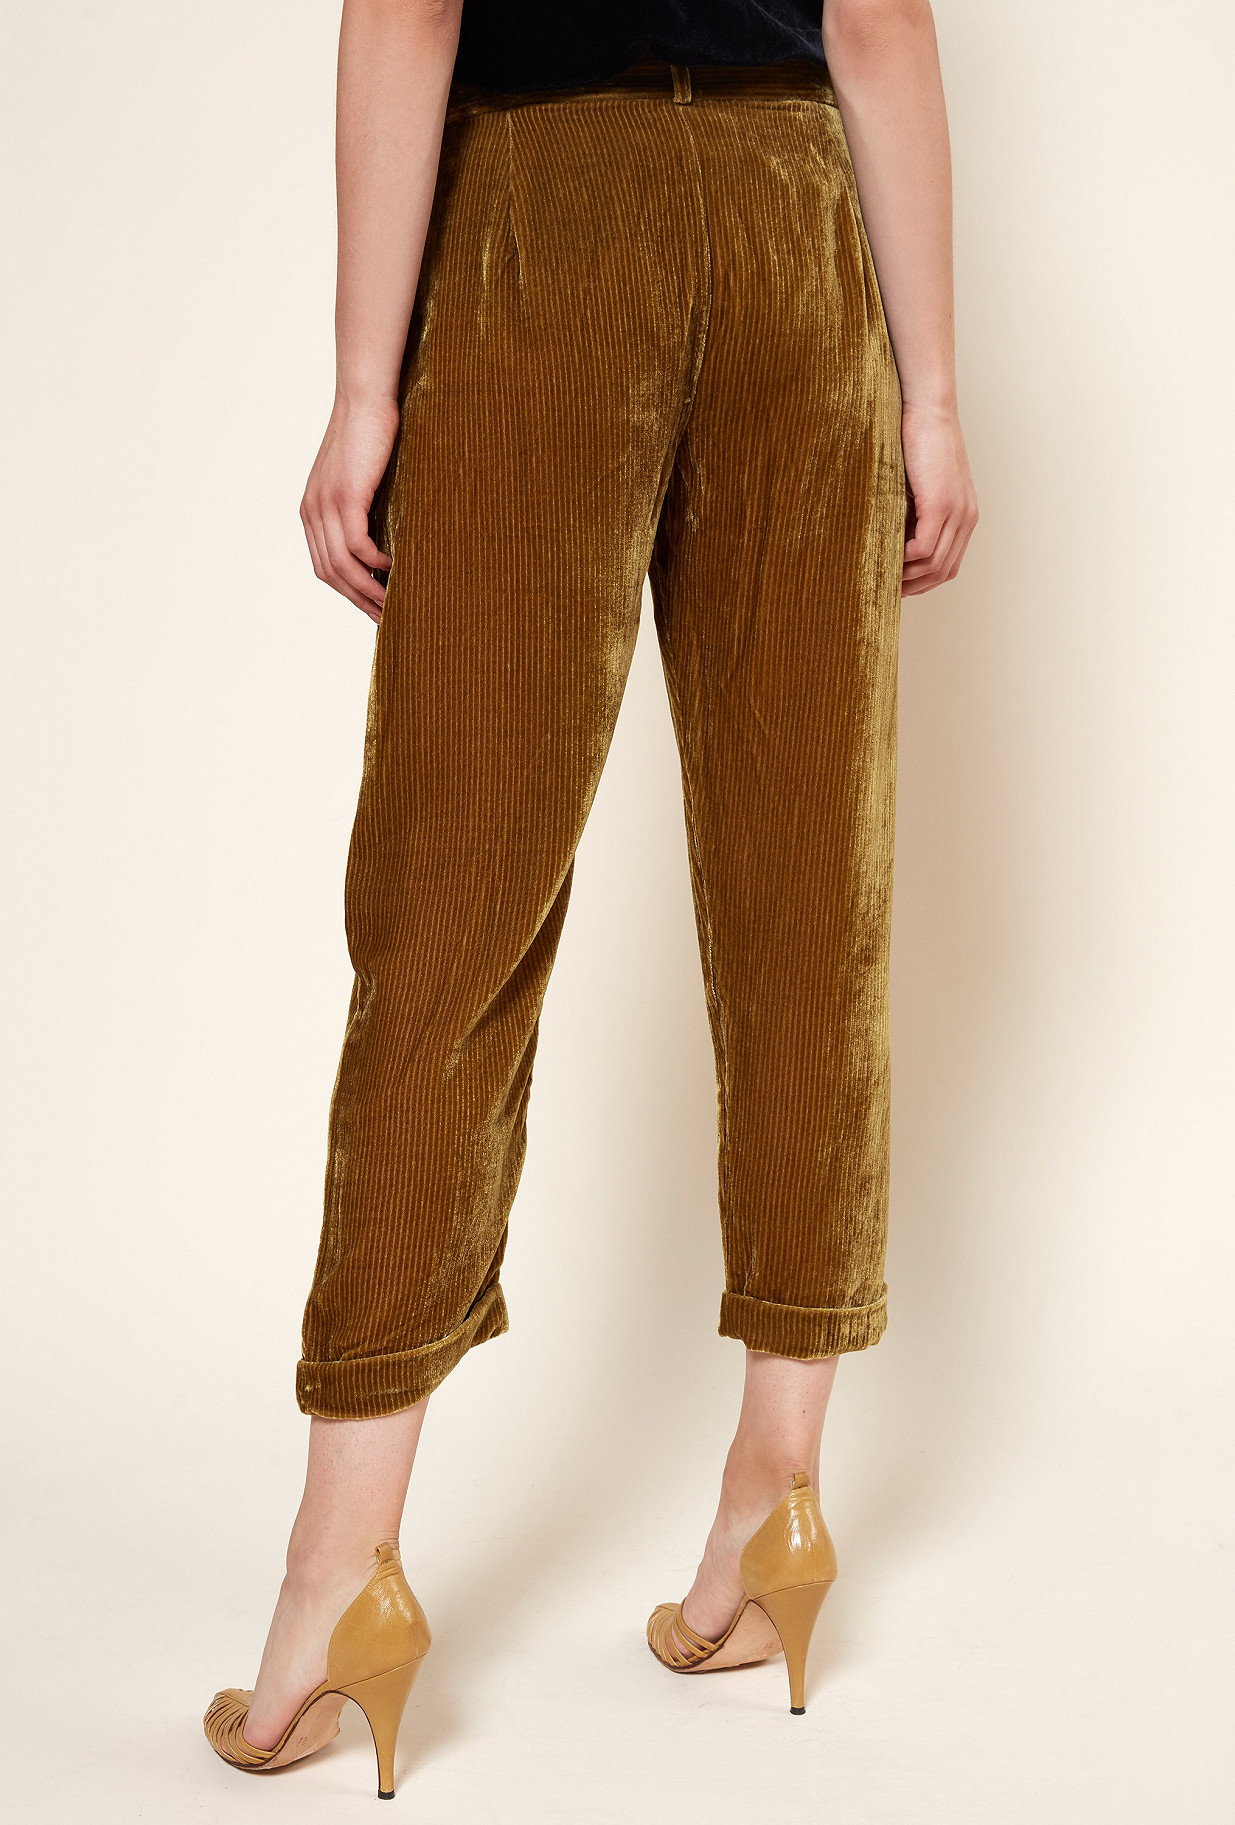 Khaki  PANT  Massimo Mes demoiselles fashion clothes designer Paris